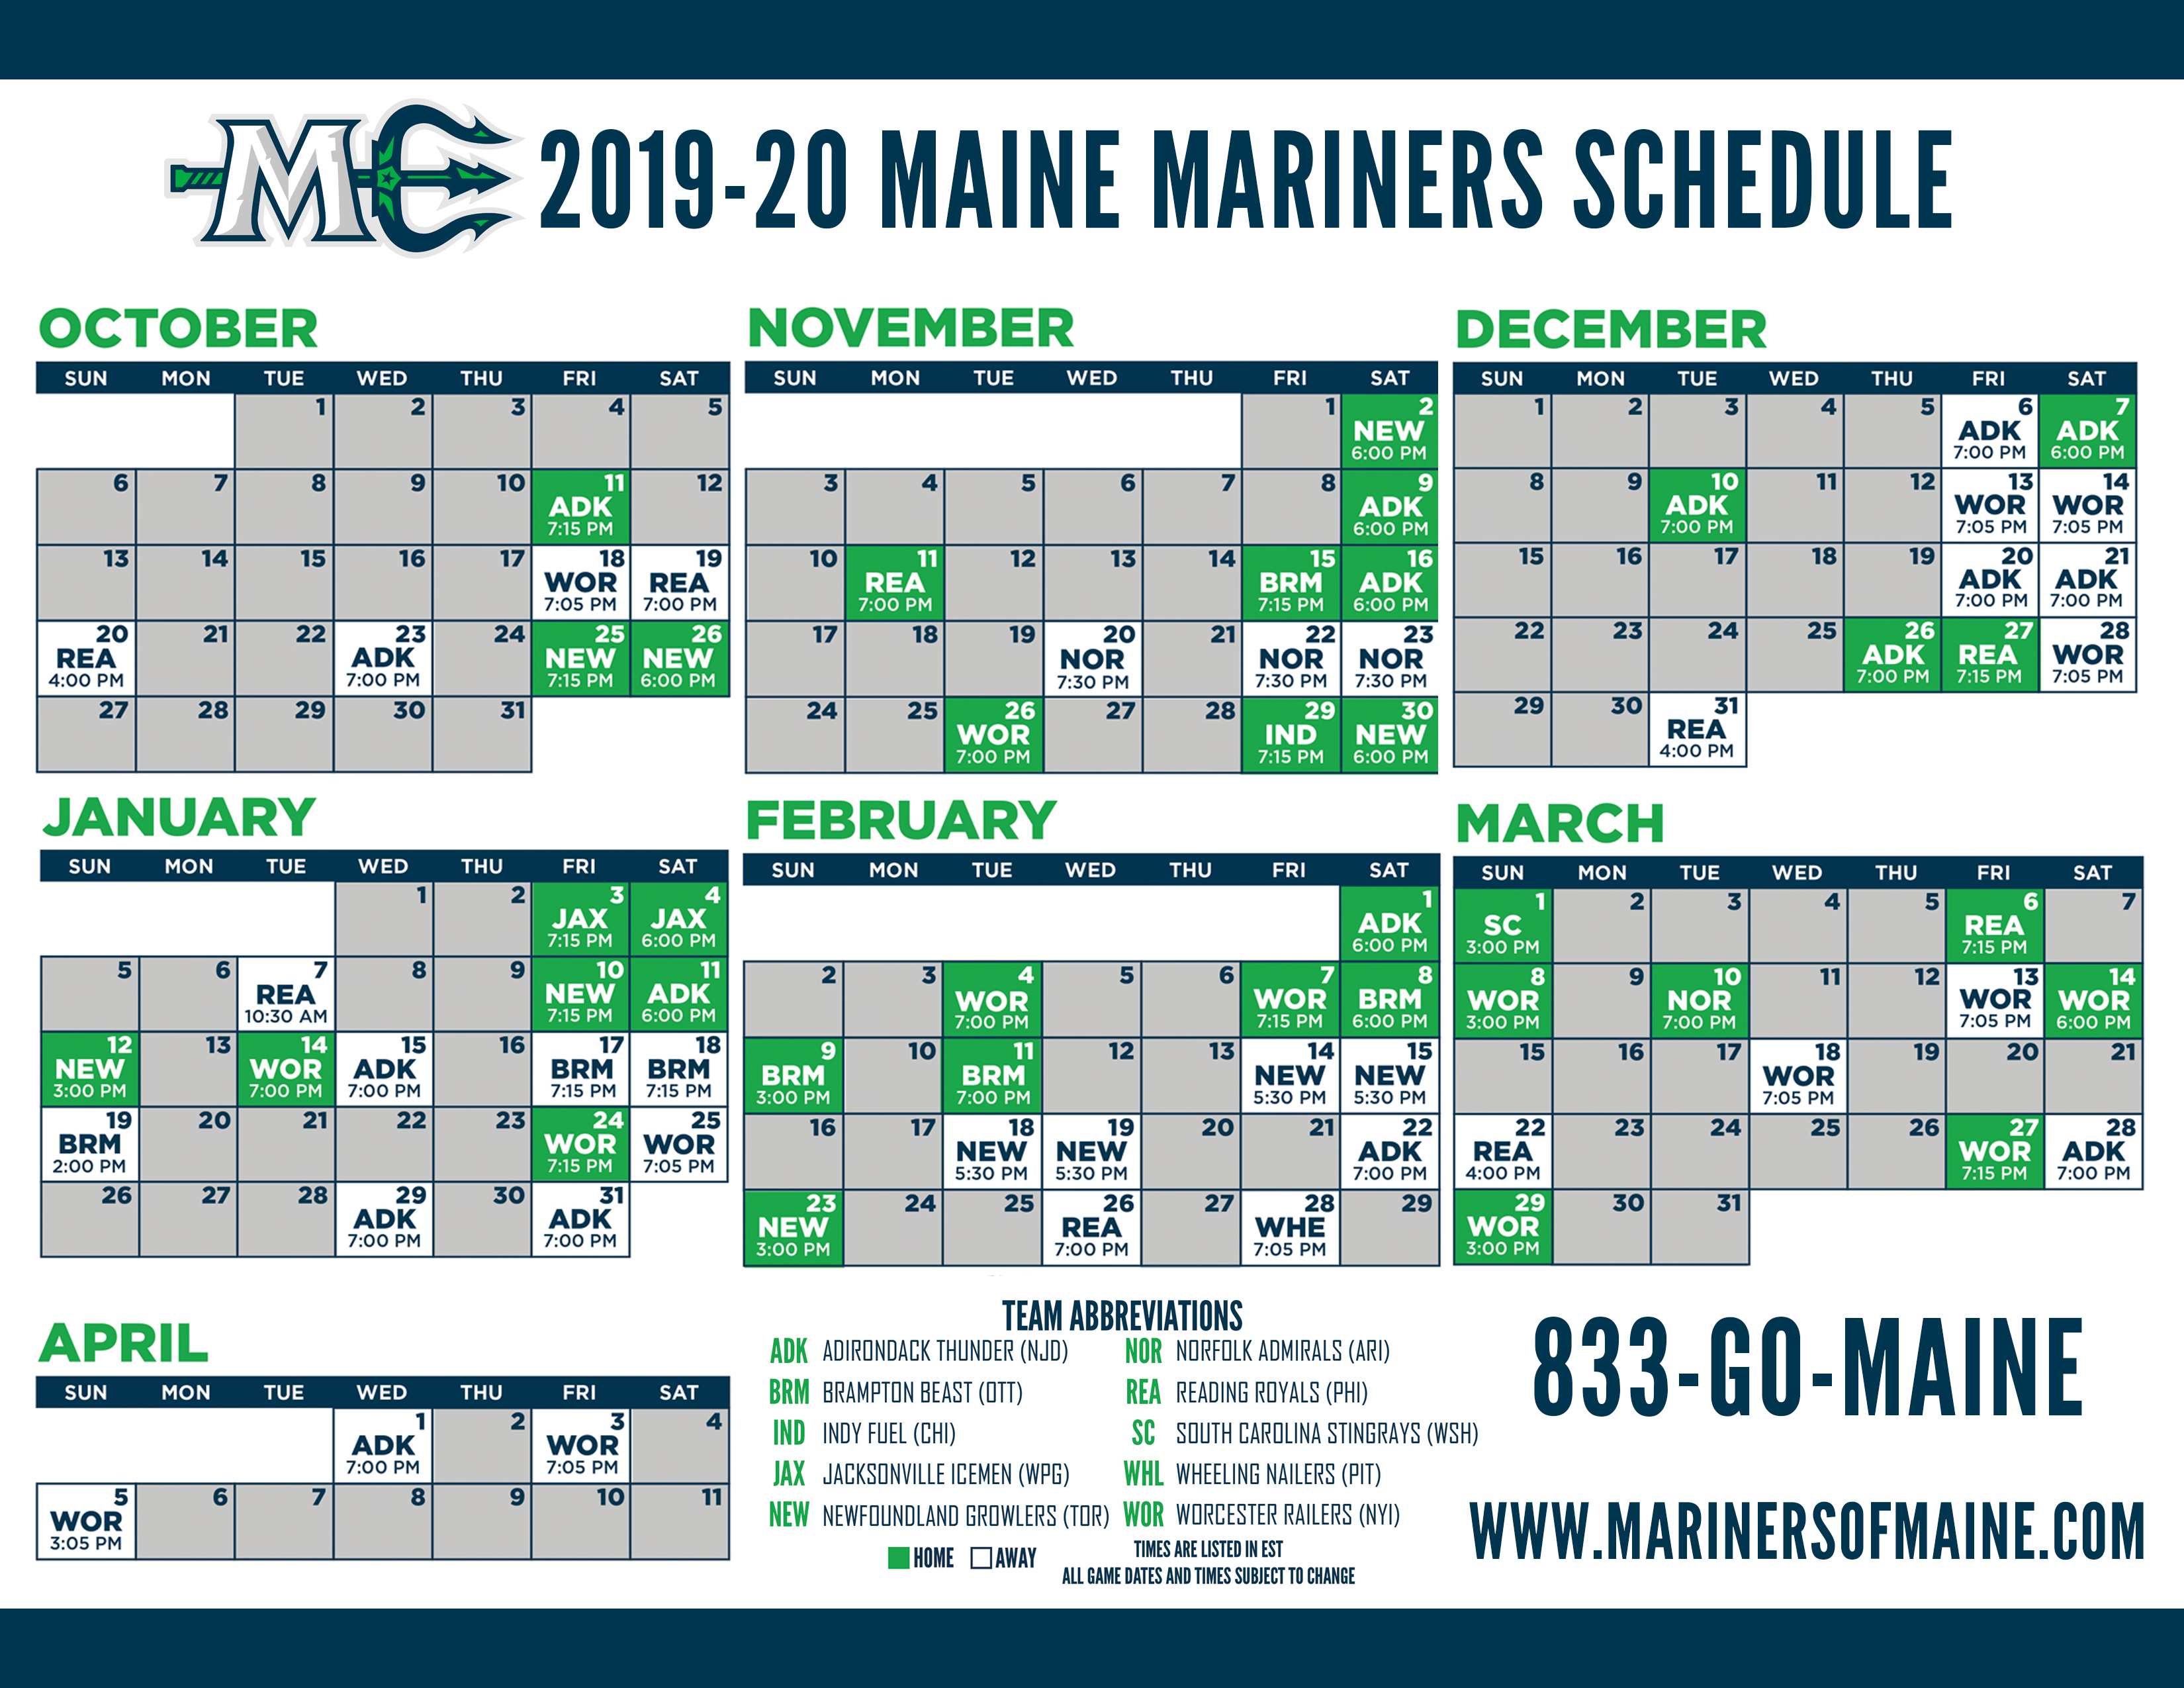 Mariners 2020 Schedule MARINERS ANNOUNCE FULL 2019 20 SCHEDULE   Maine Mariners